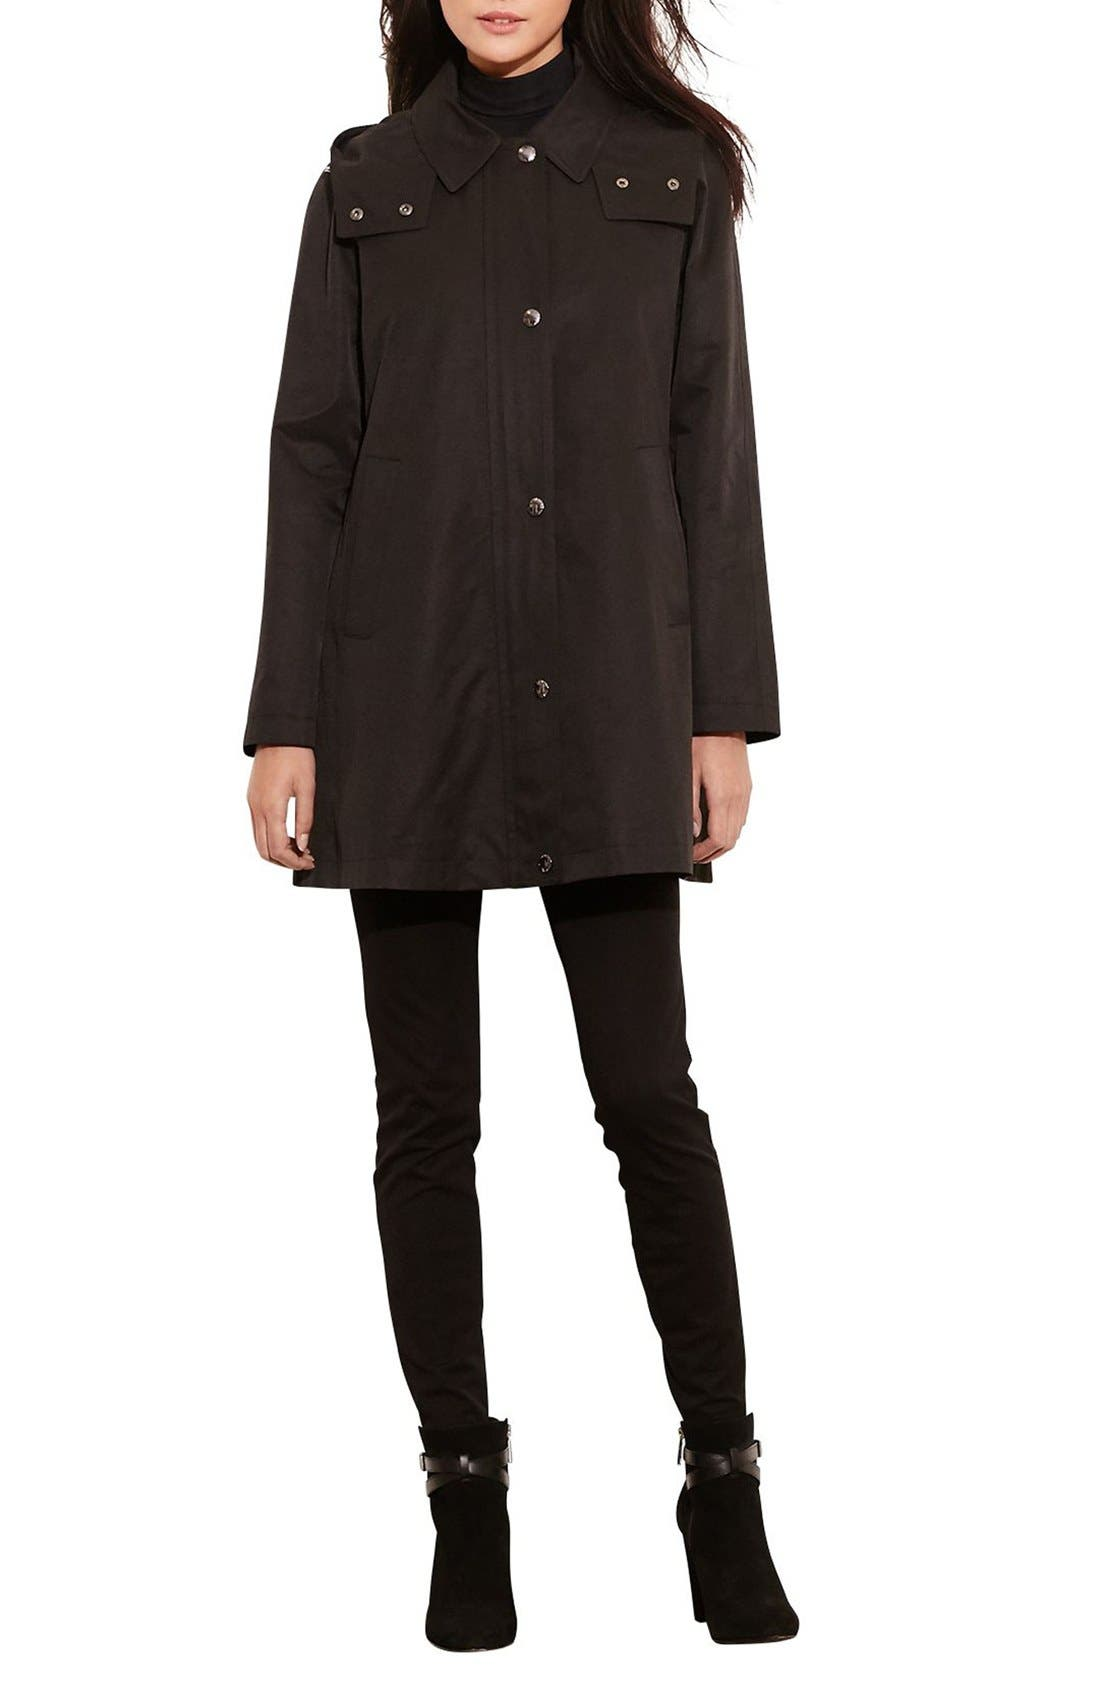 A-Line Jacket with Removable Liner,                             Main thumbnail 1, color,                             001